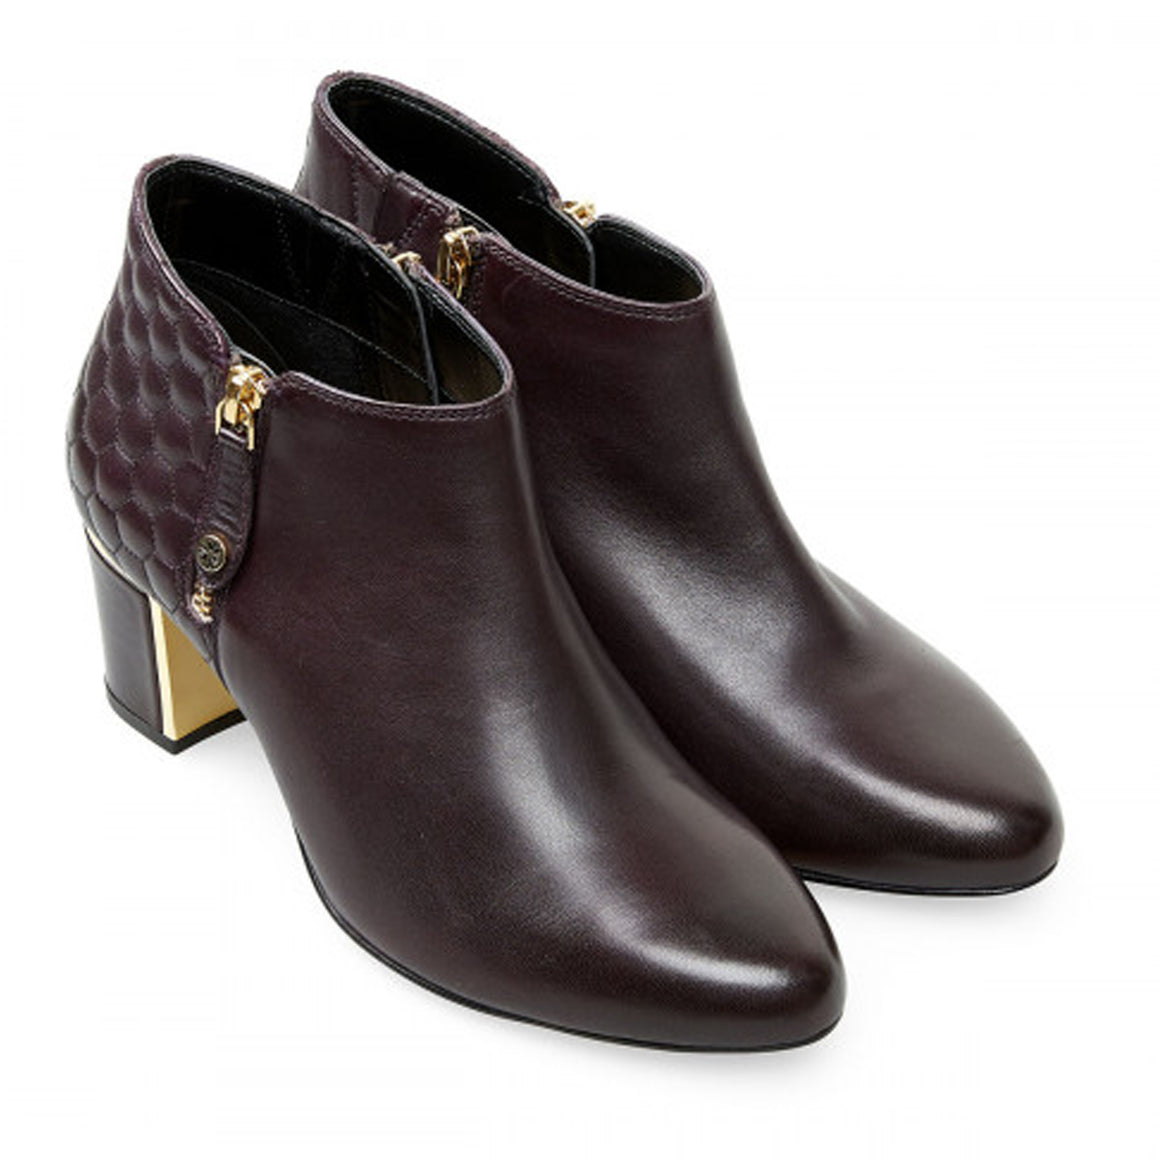 Arial IV Boot for Women in Bordo